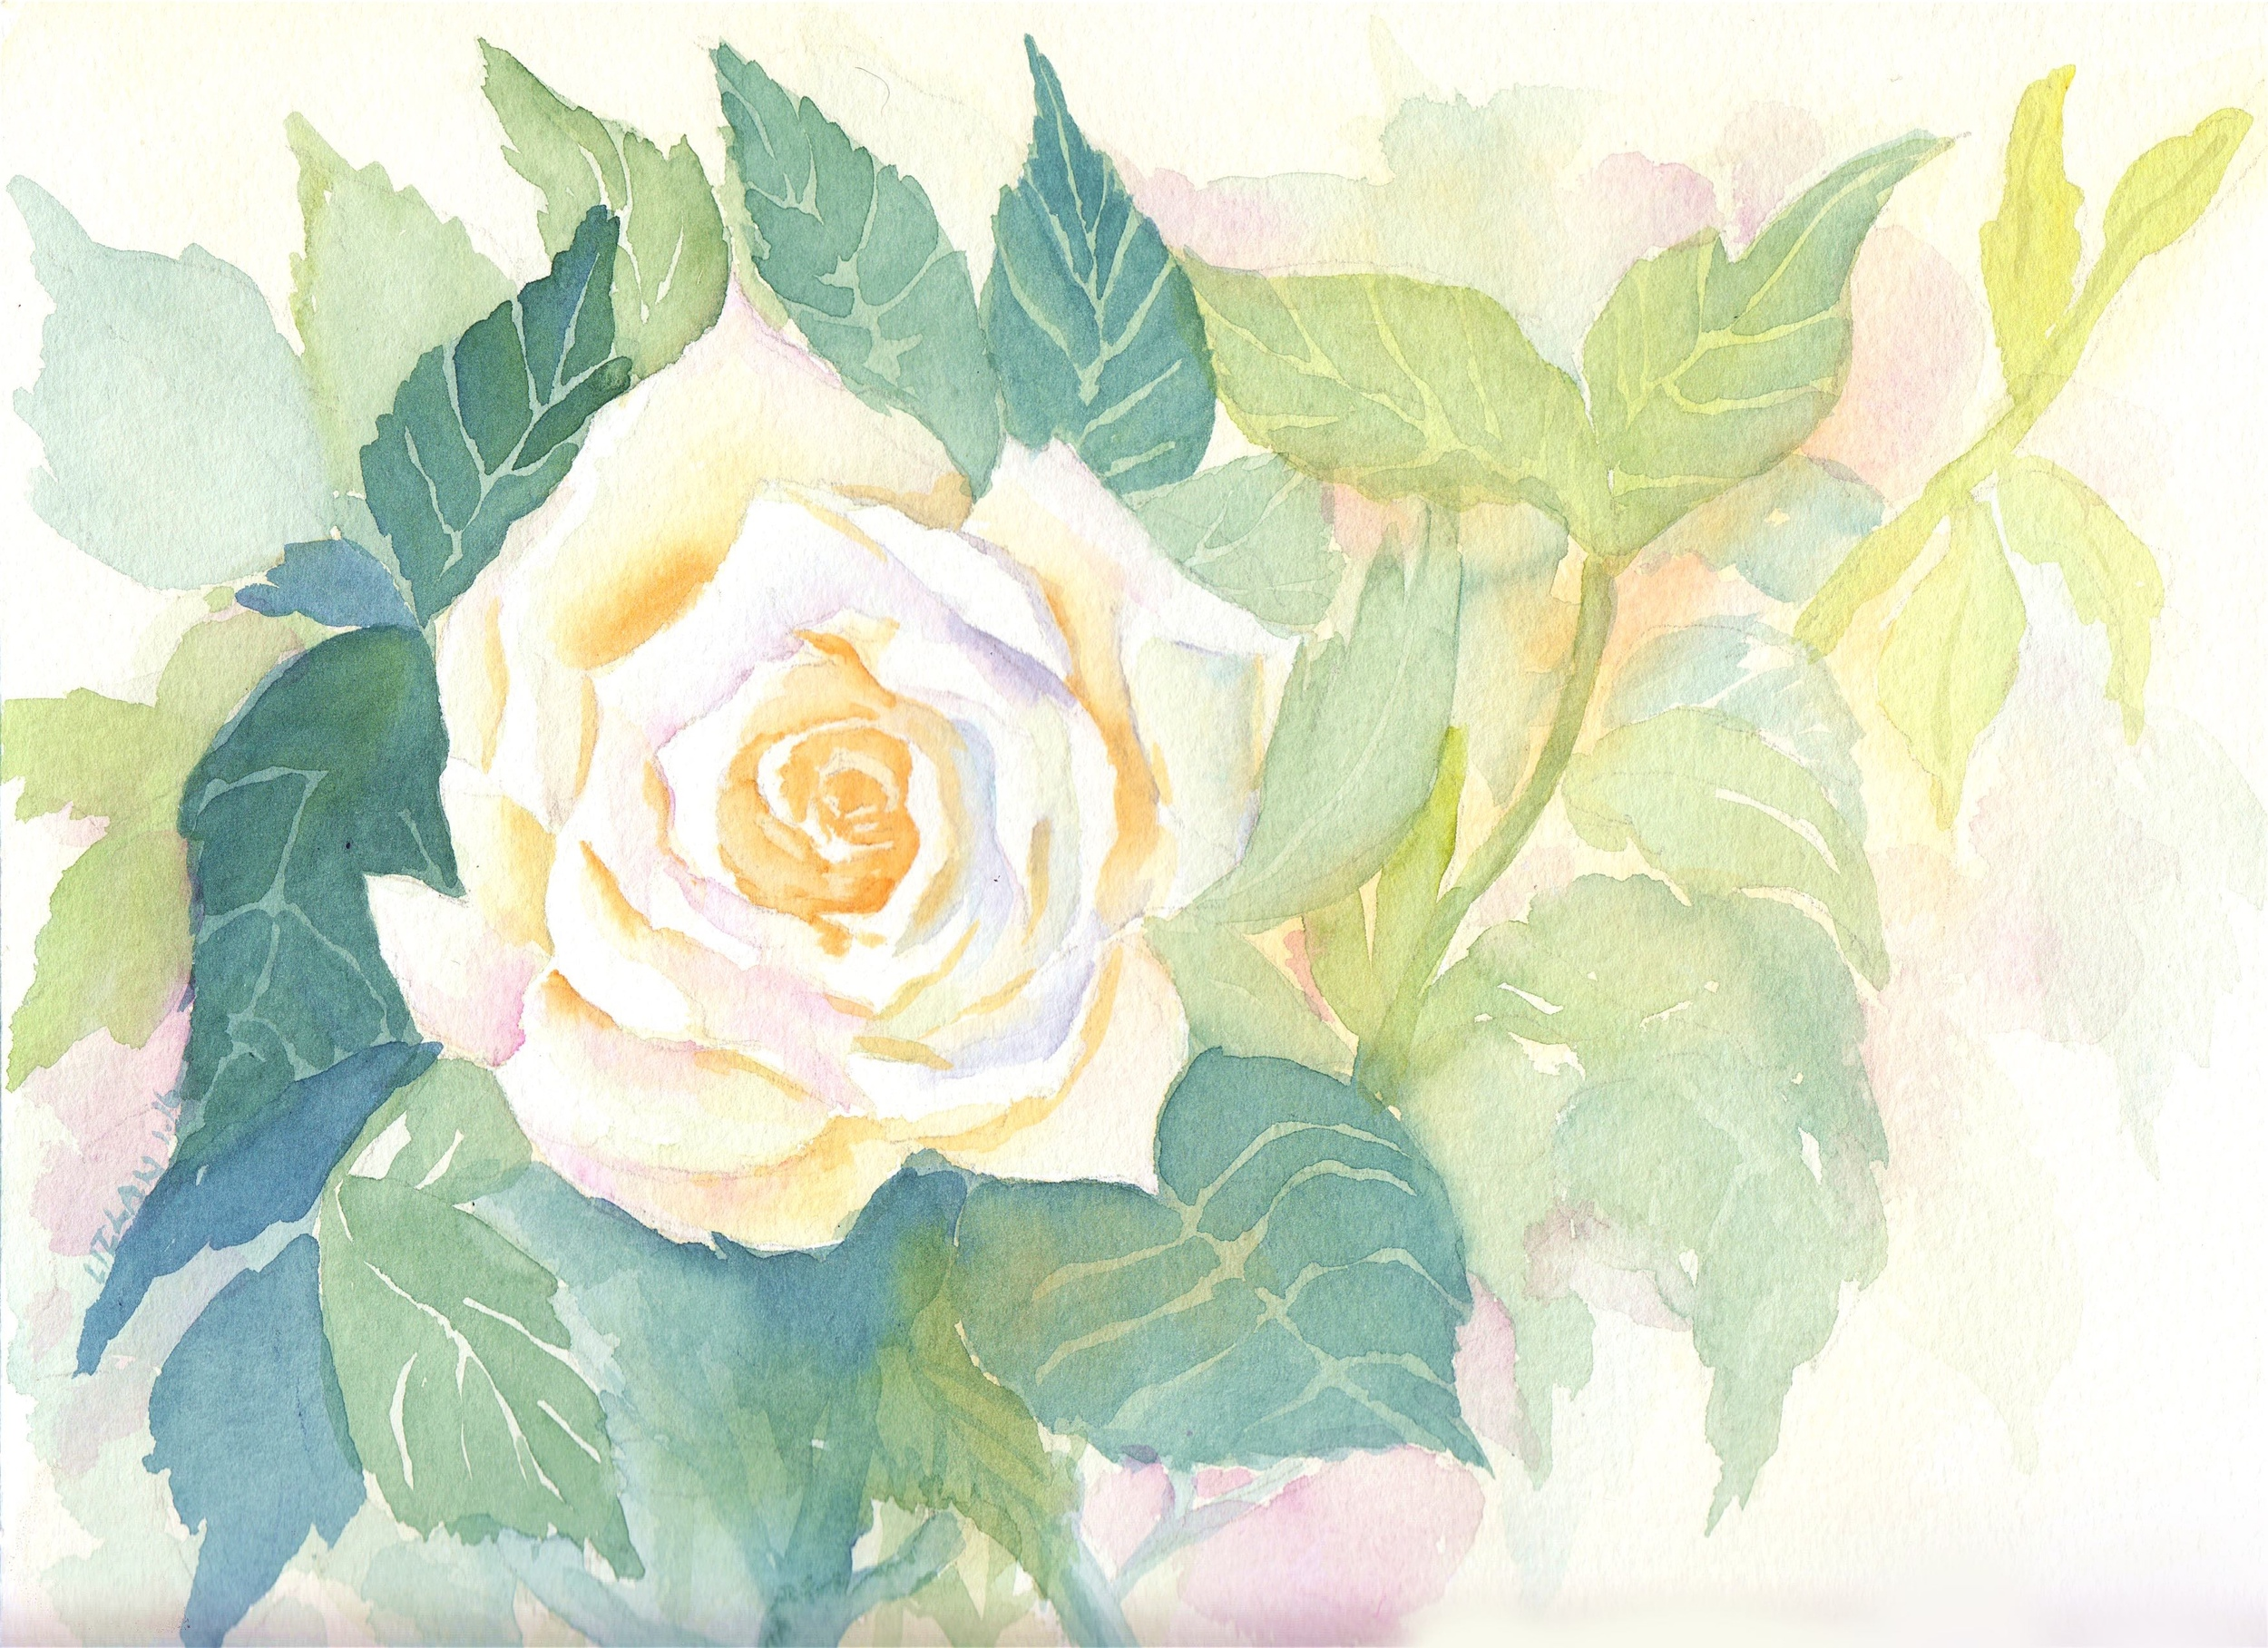 White Rose, watercolor on paper / Liz Lanuzo